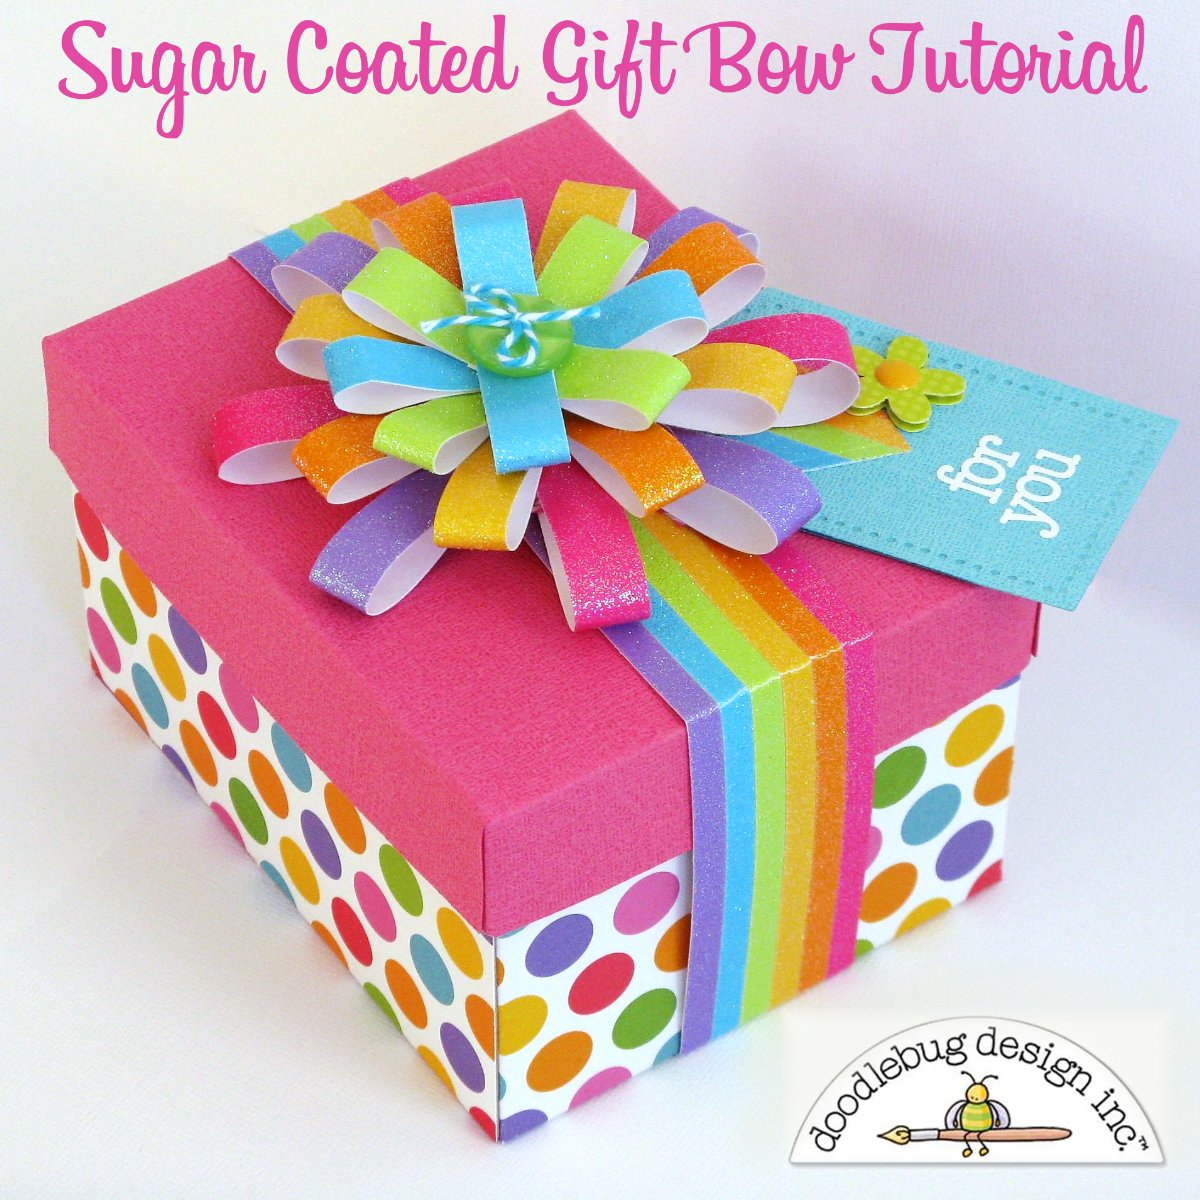 Snippets By Mendi: A Sugar Coated Rainbow Gift Bow Tutorial by Mendi